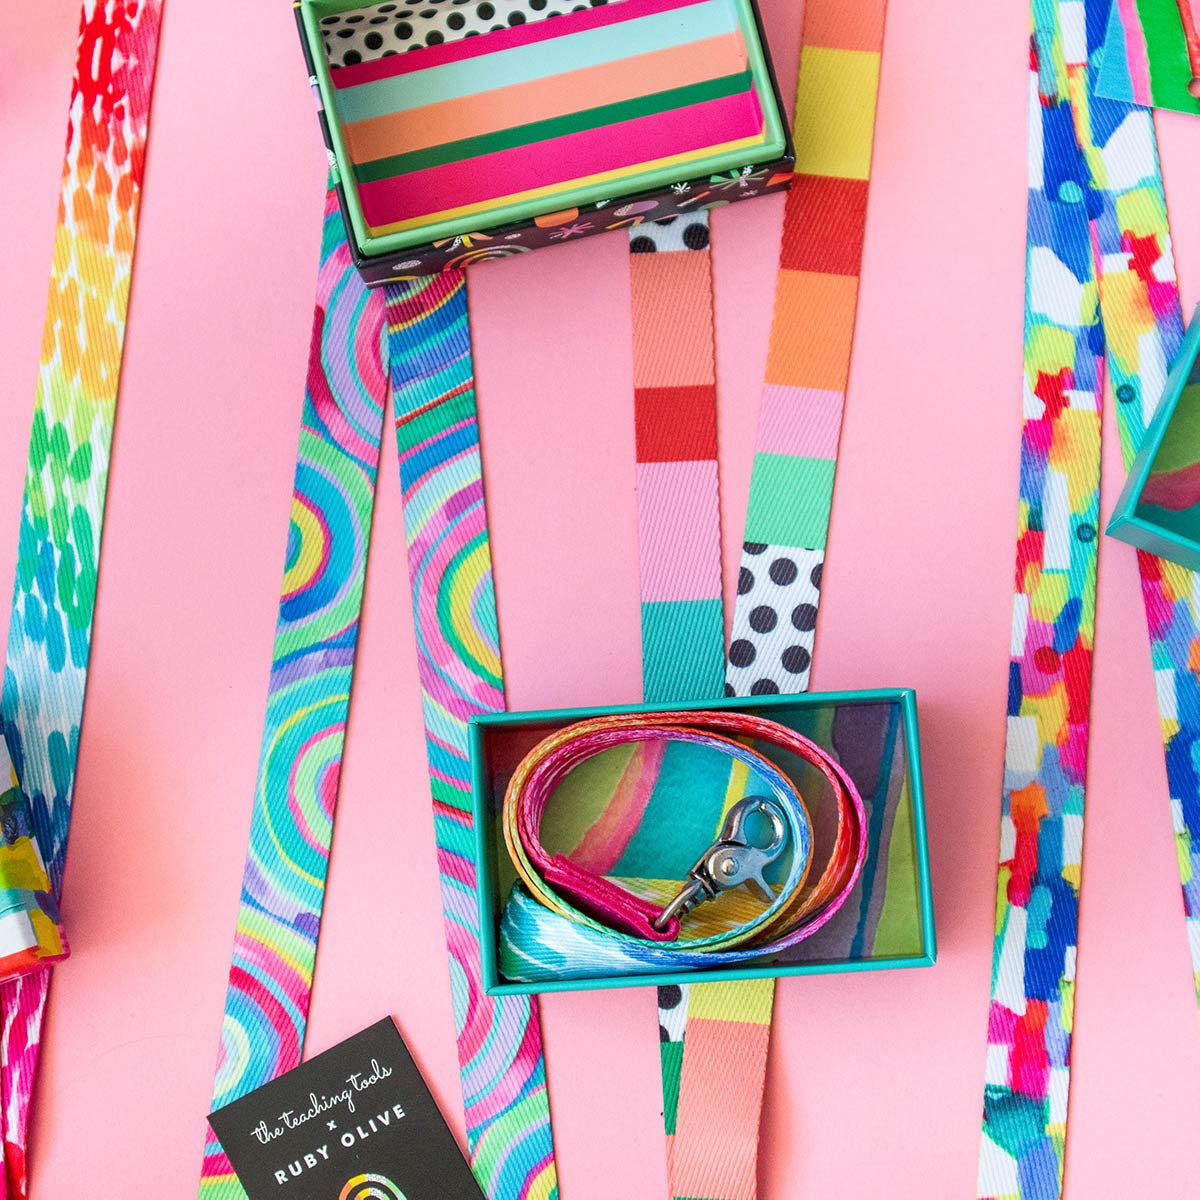 Colourful Ruby Olive lanyards laying on pink background